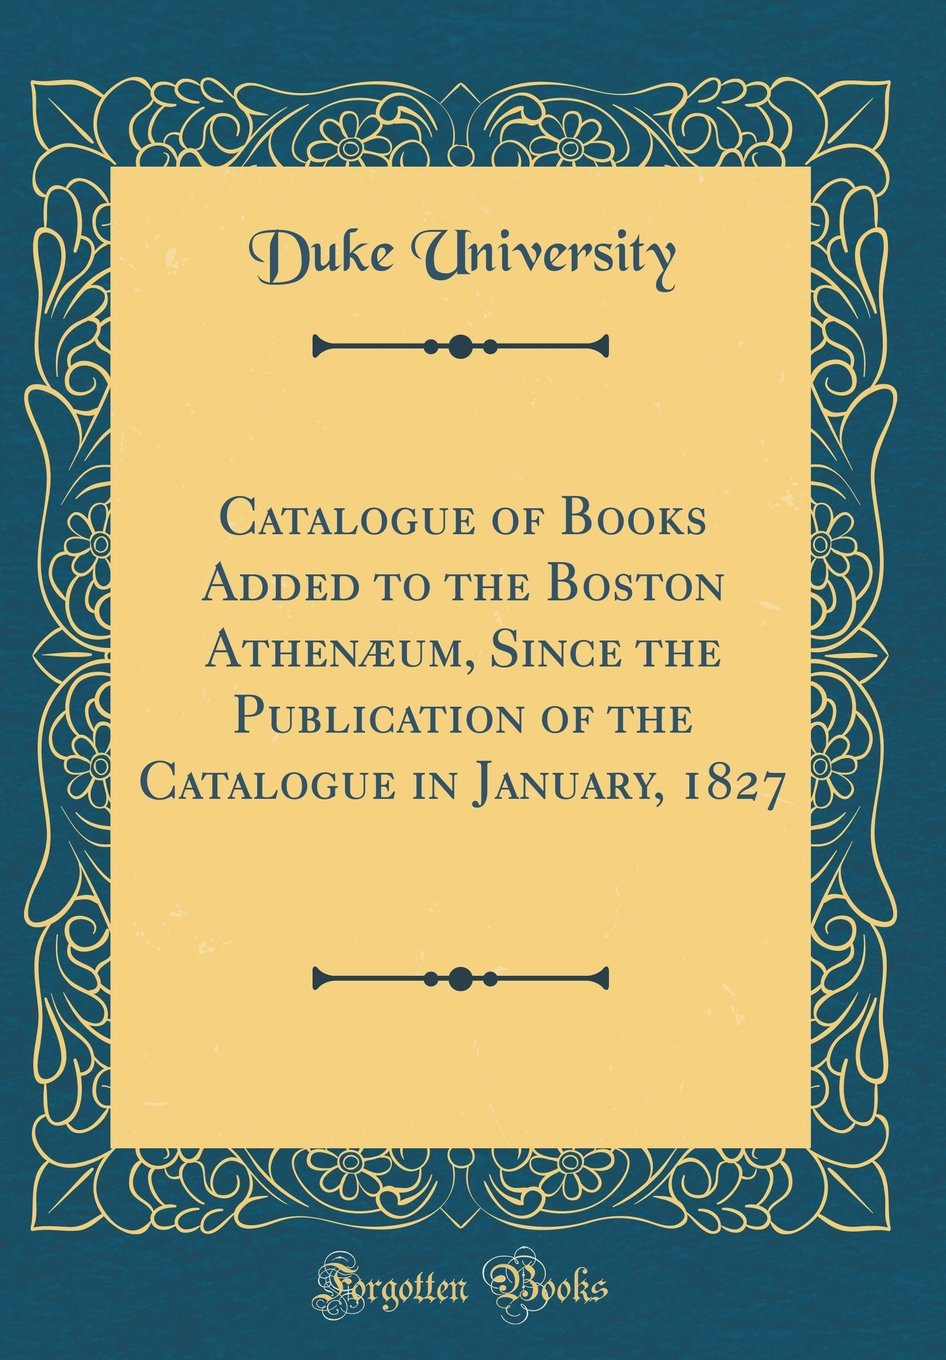 Catalogue of Books Added to the Boston Athenæum, Since the Publication of the Catalogue in January, 1827 (Classic Reprint) PDF